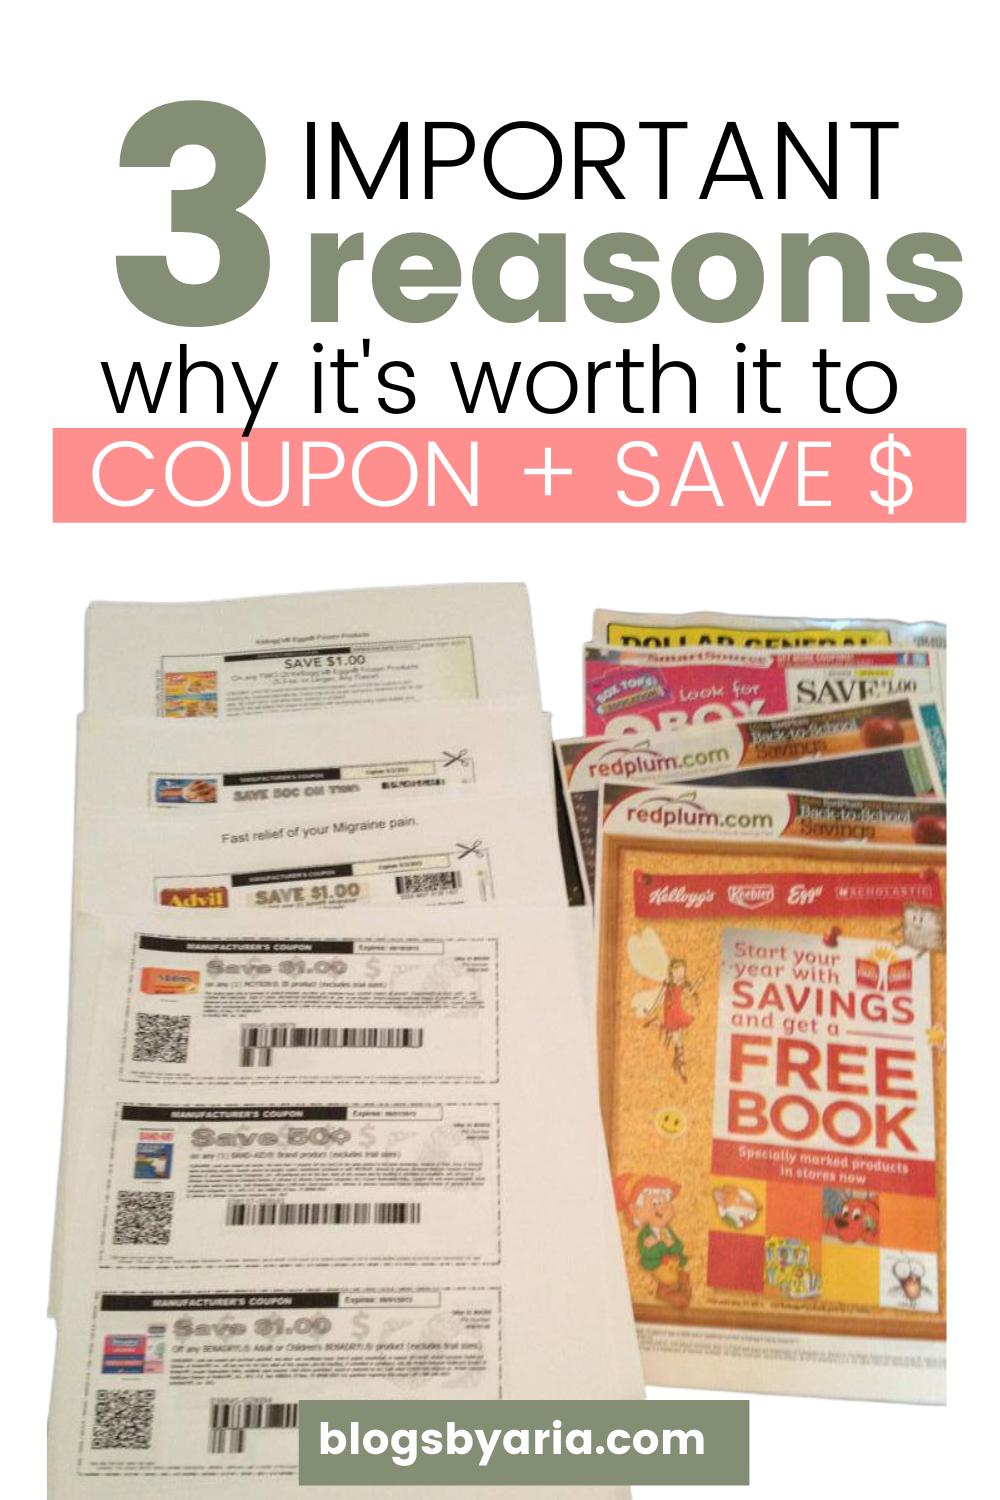 3 Important Reasons why it's worth it to coupon